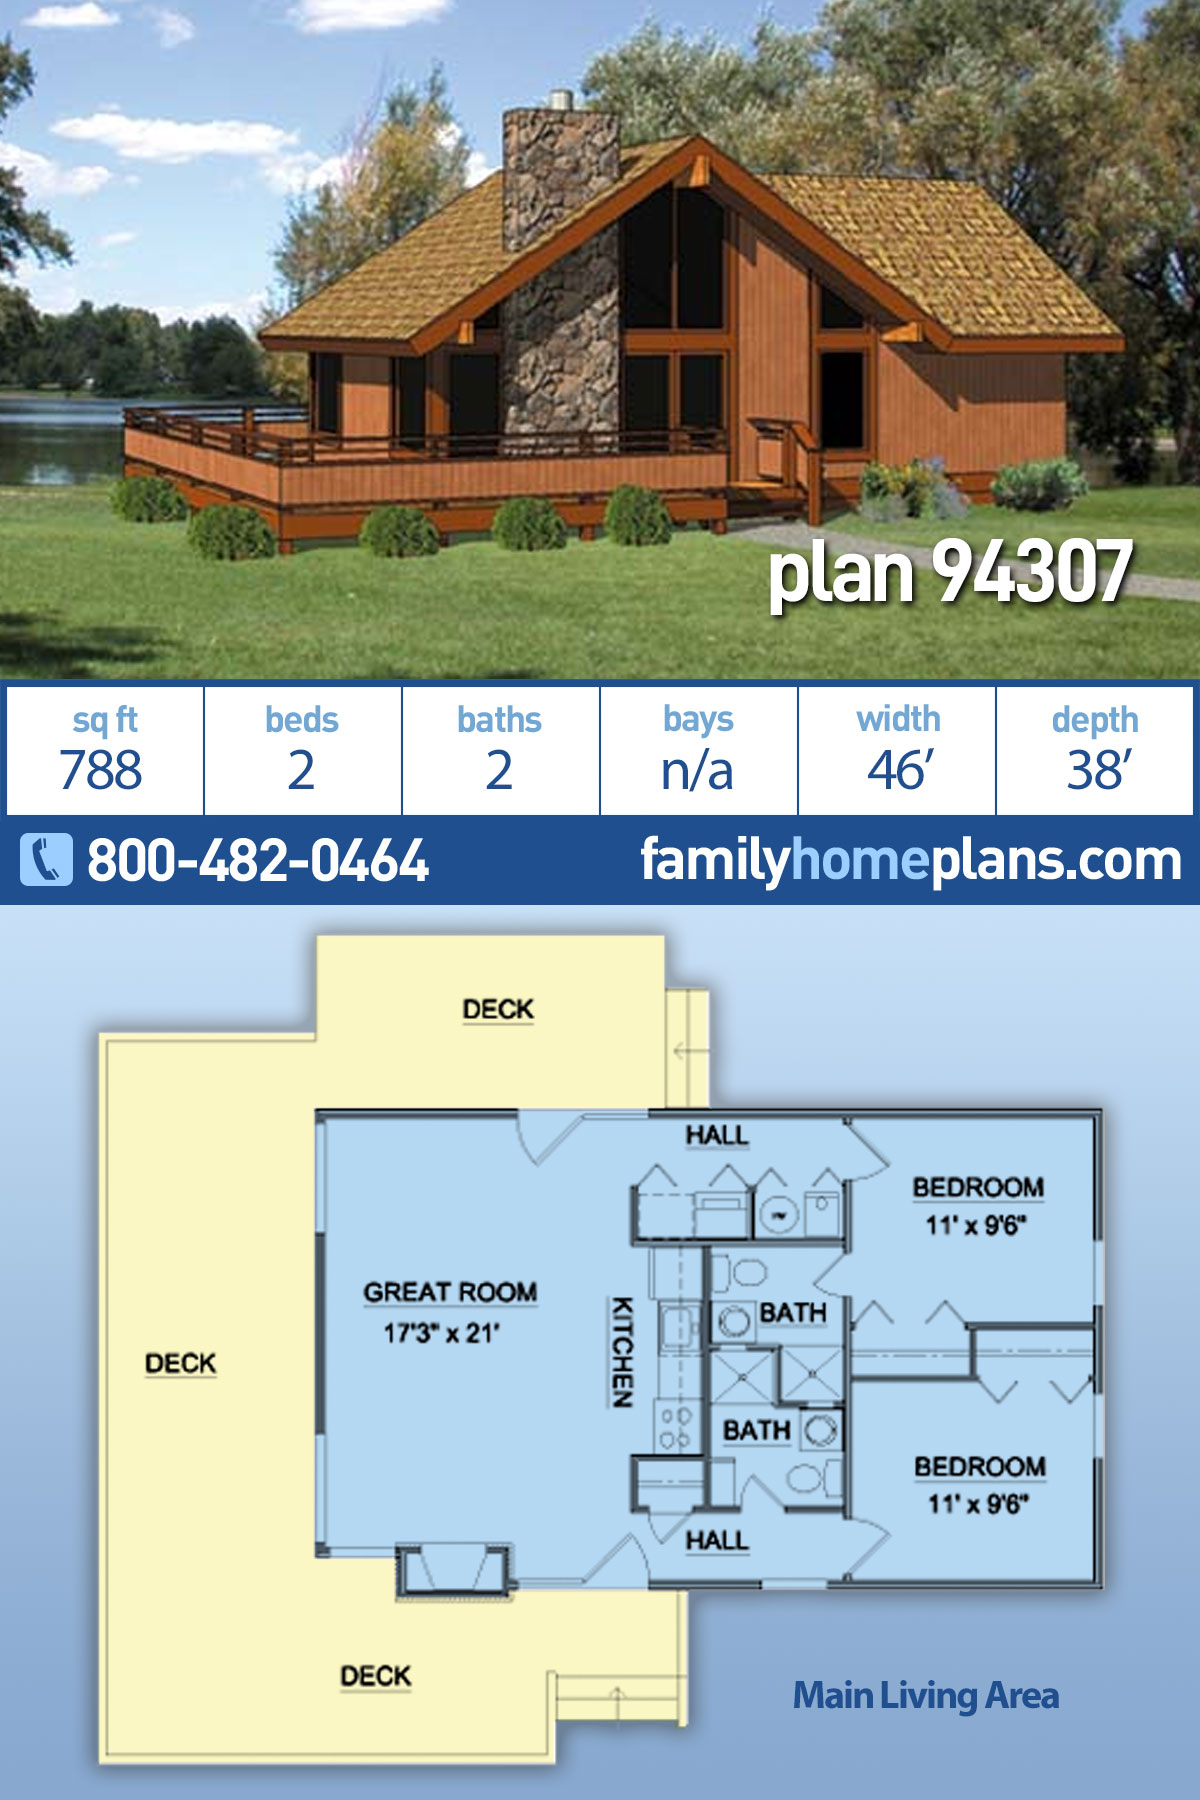 Cabin House Plan 94307 with 2 Beds, 2 Baths